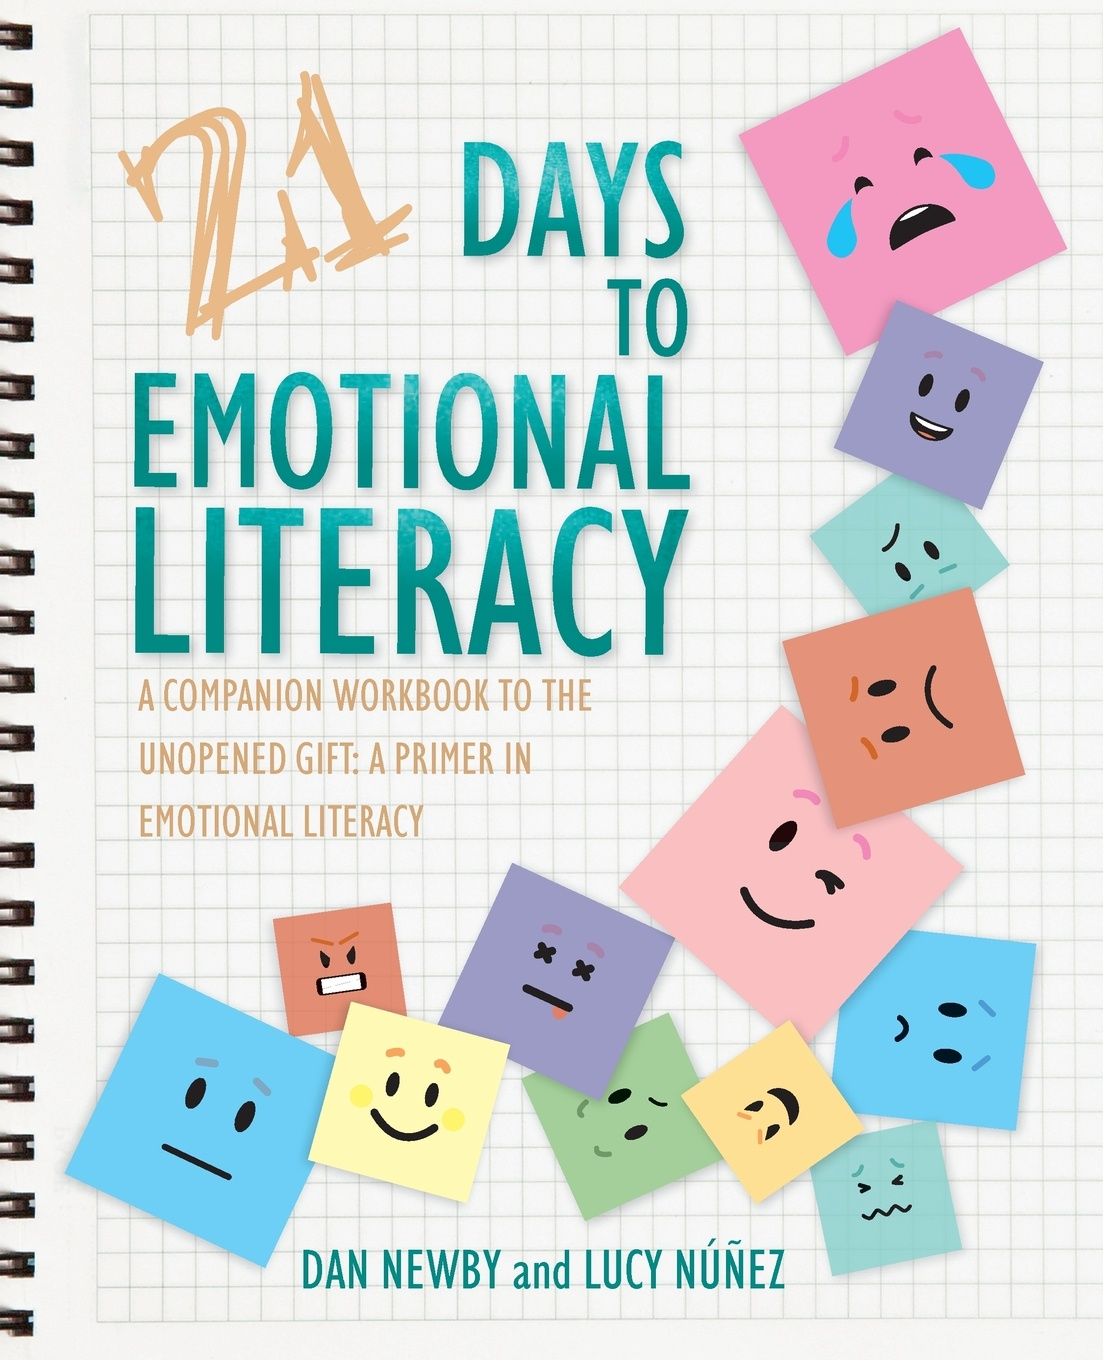 Dan Newby, Lucy Núñez 21 Days to Emotional Literacy. A Companion Workbook to The Unopened Gift tis the gift to be simple